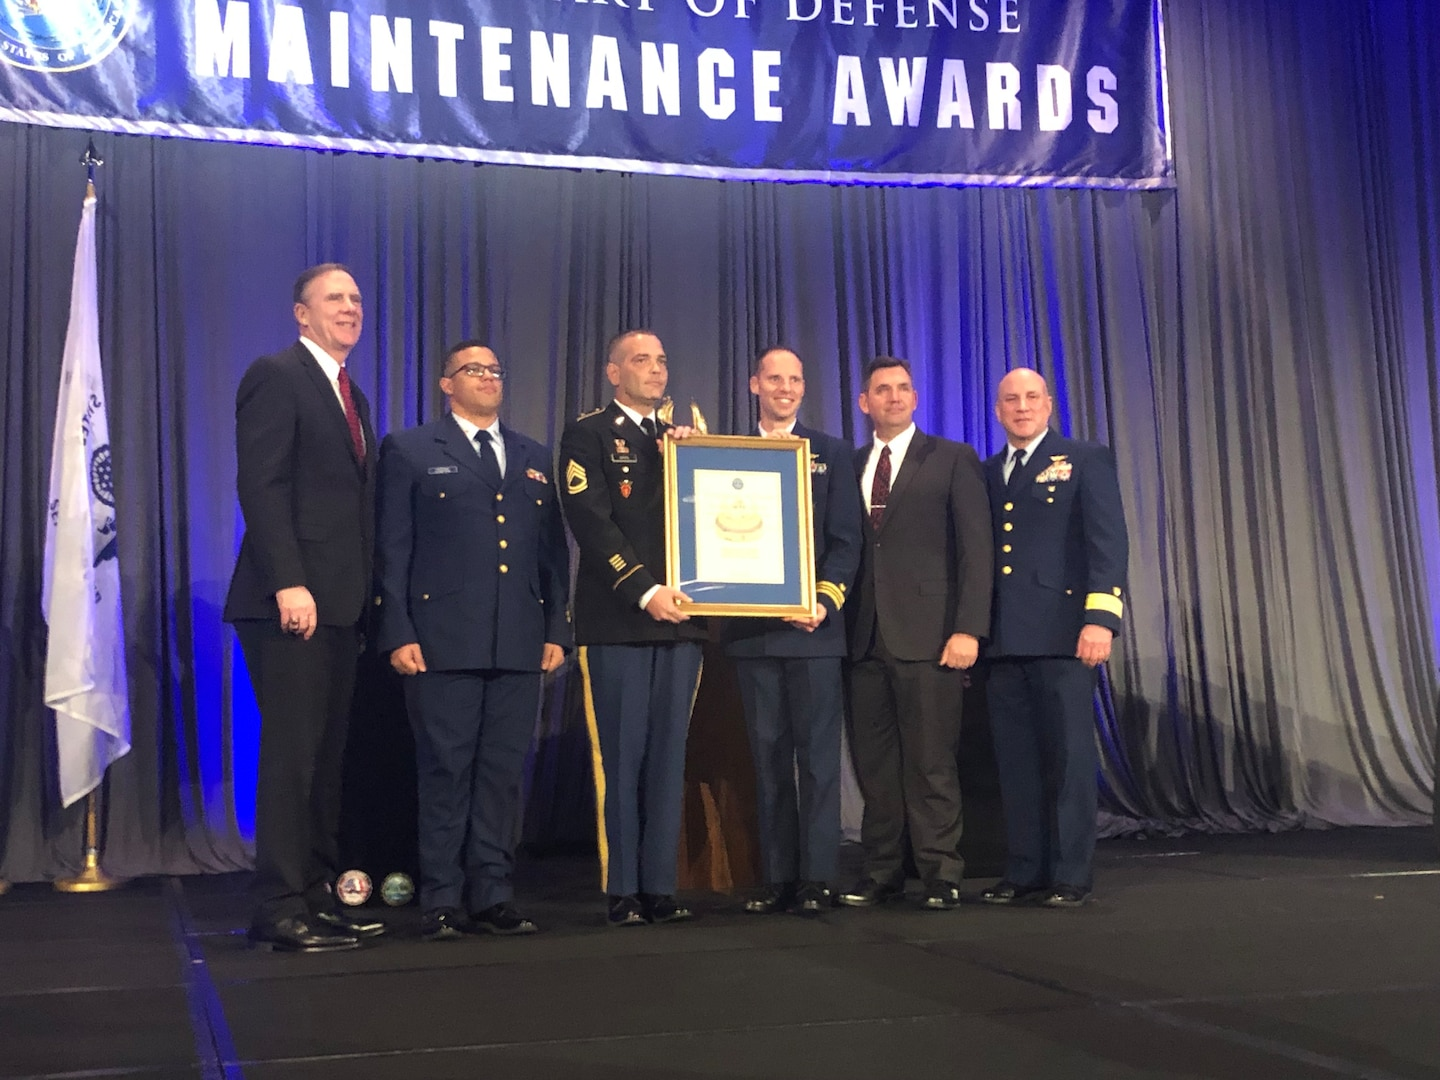 The Department of Defense presented the U.S. Southern Command-based Caribbean Basin Security Initiative Technical Assistance Field Team (CBSI-TAFT) with the 2018 Secretary of Defense Award for Excellence in Maintenance Training, Advice, and Assistance of Foreign Security Forces Operational during a ceremony in Tampa, Fla. Dec. 18.